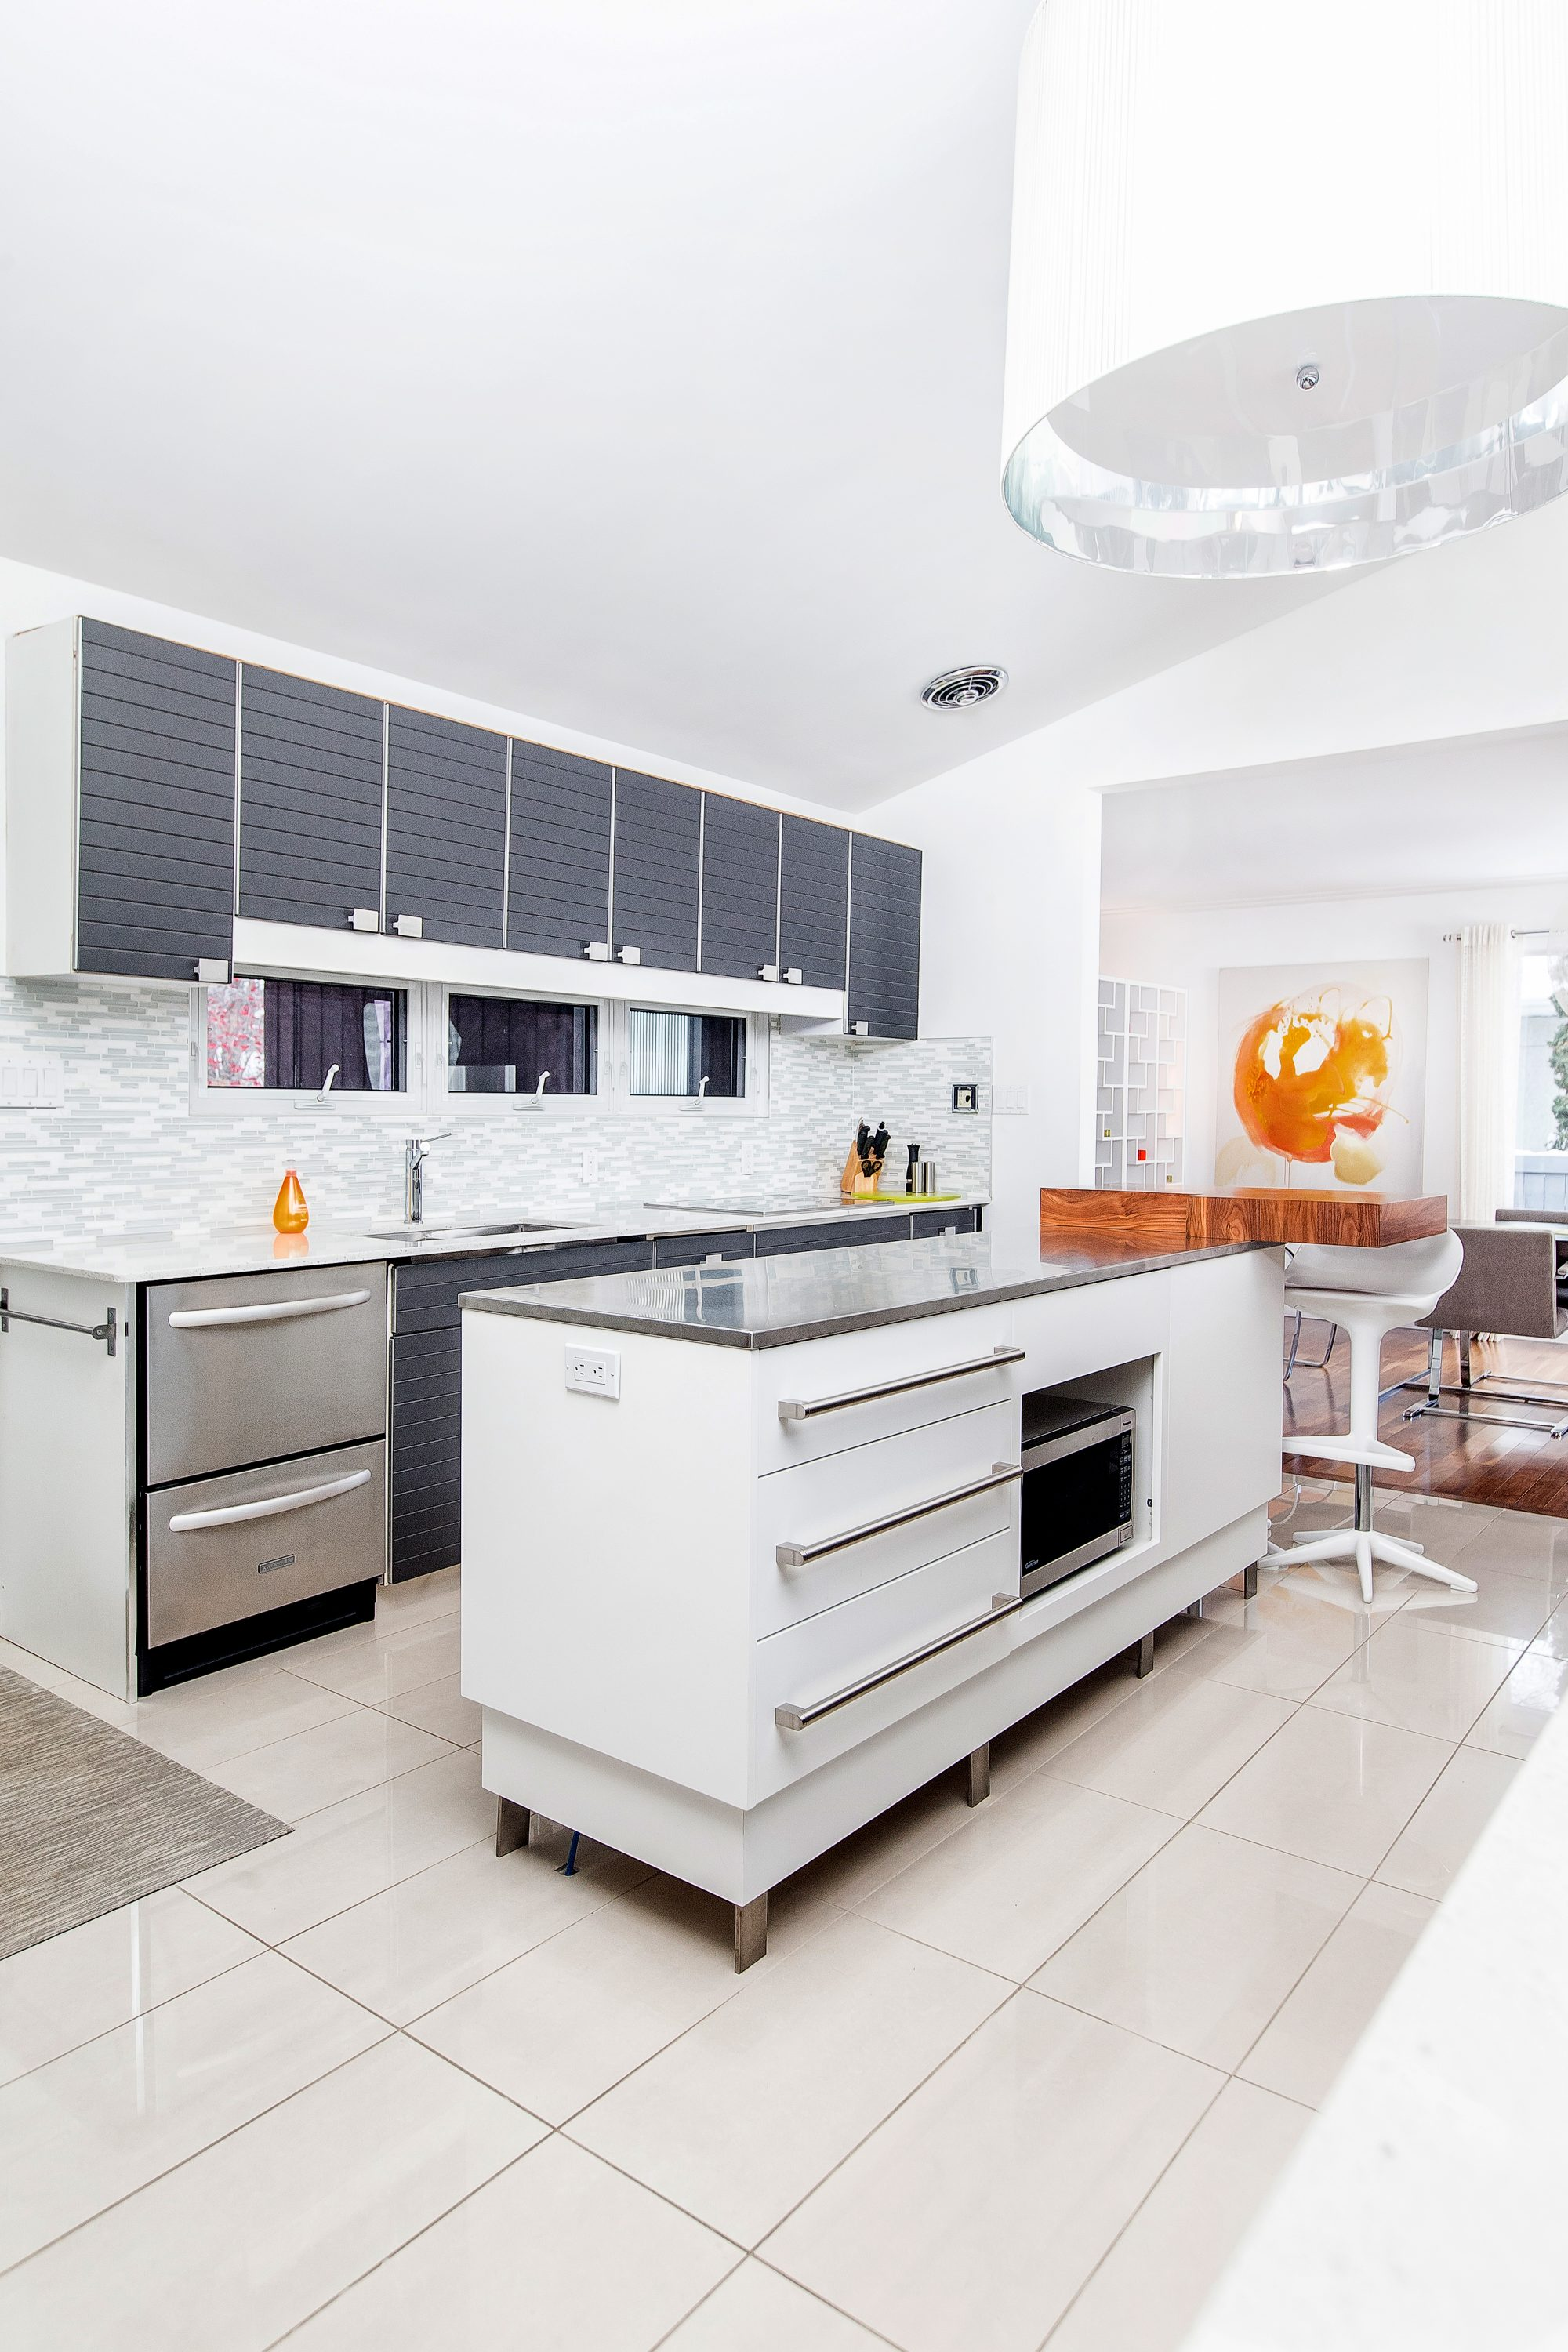 Kitchen:  Painting by Annique Shields.  Kartell chair and Chilewich mat, from Inspired Home Interiors.  Custom-made island by IZM.  Global Views vase and Gus Modern cube, both from Inspired Home Interiors.  Light from Vivid Concepts Lighting + Design.